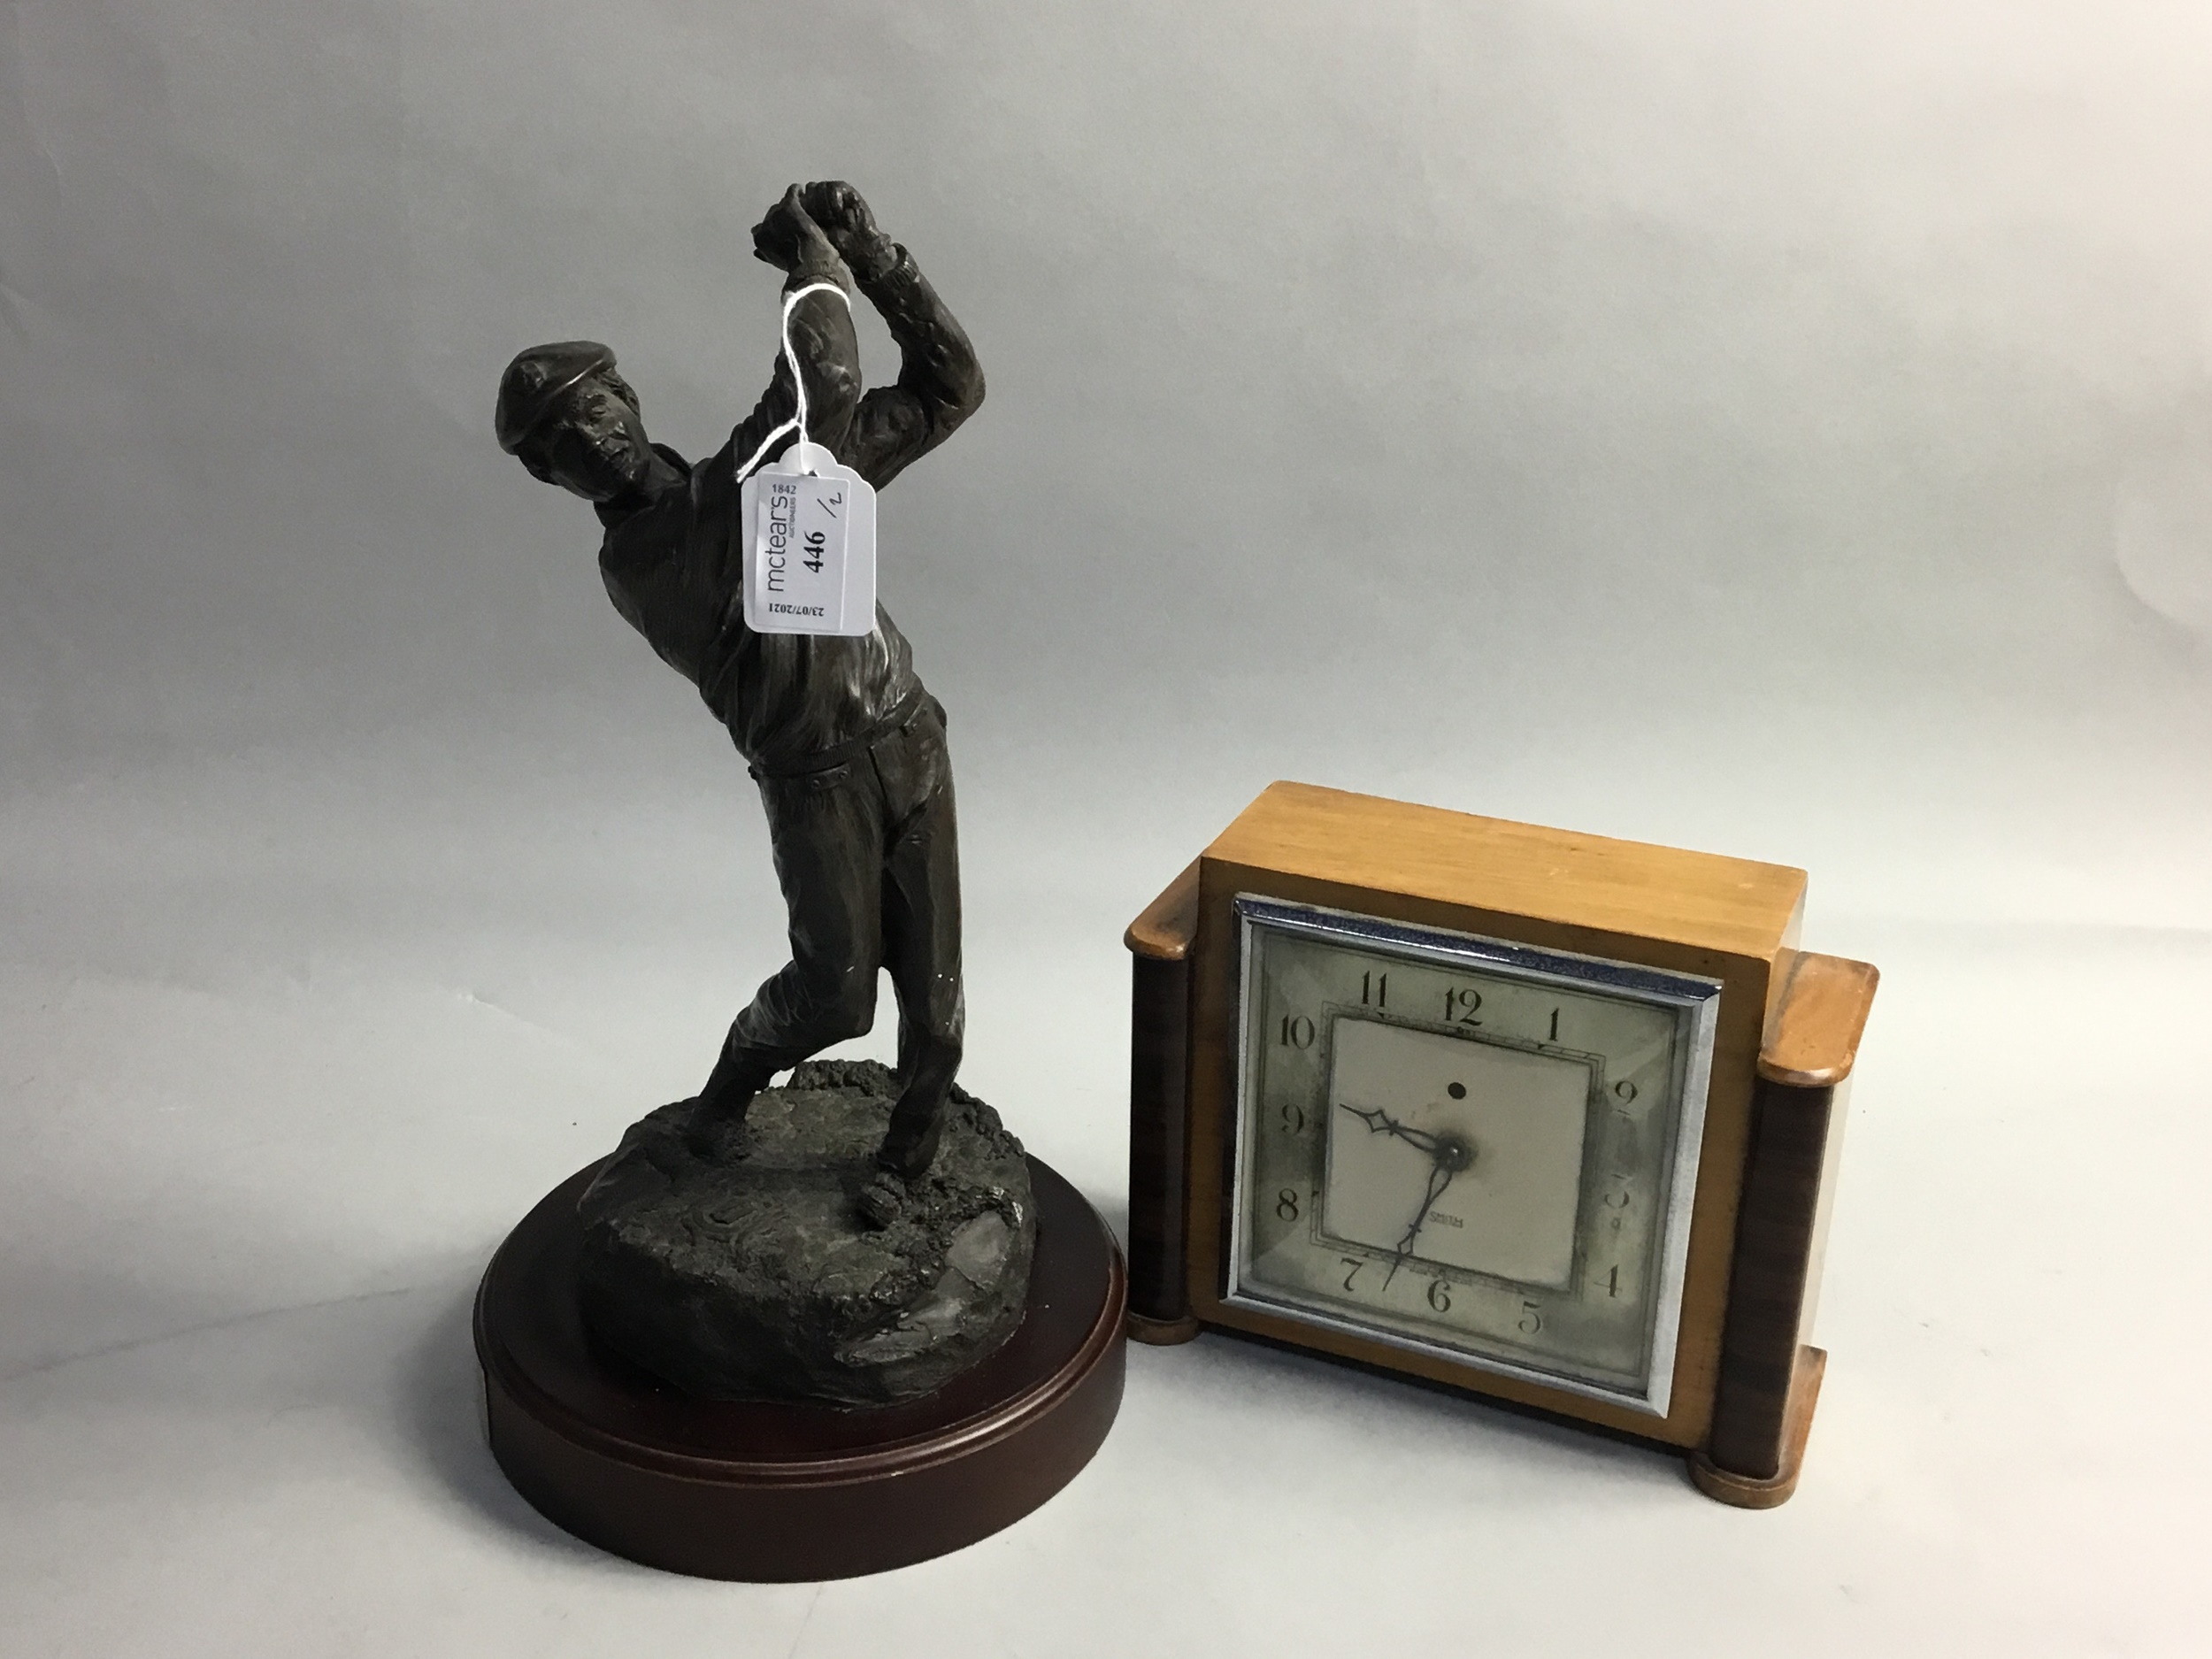 A SMITHS MANTEL CLOCK AND A BRONZED FIGURE OF A GOLFER